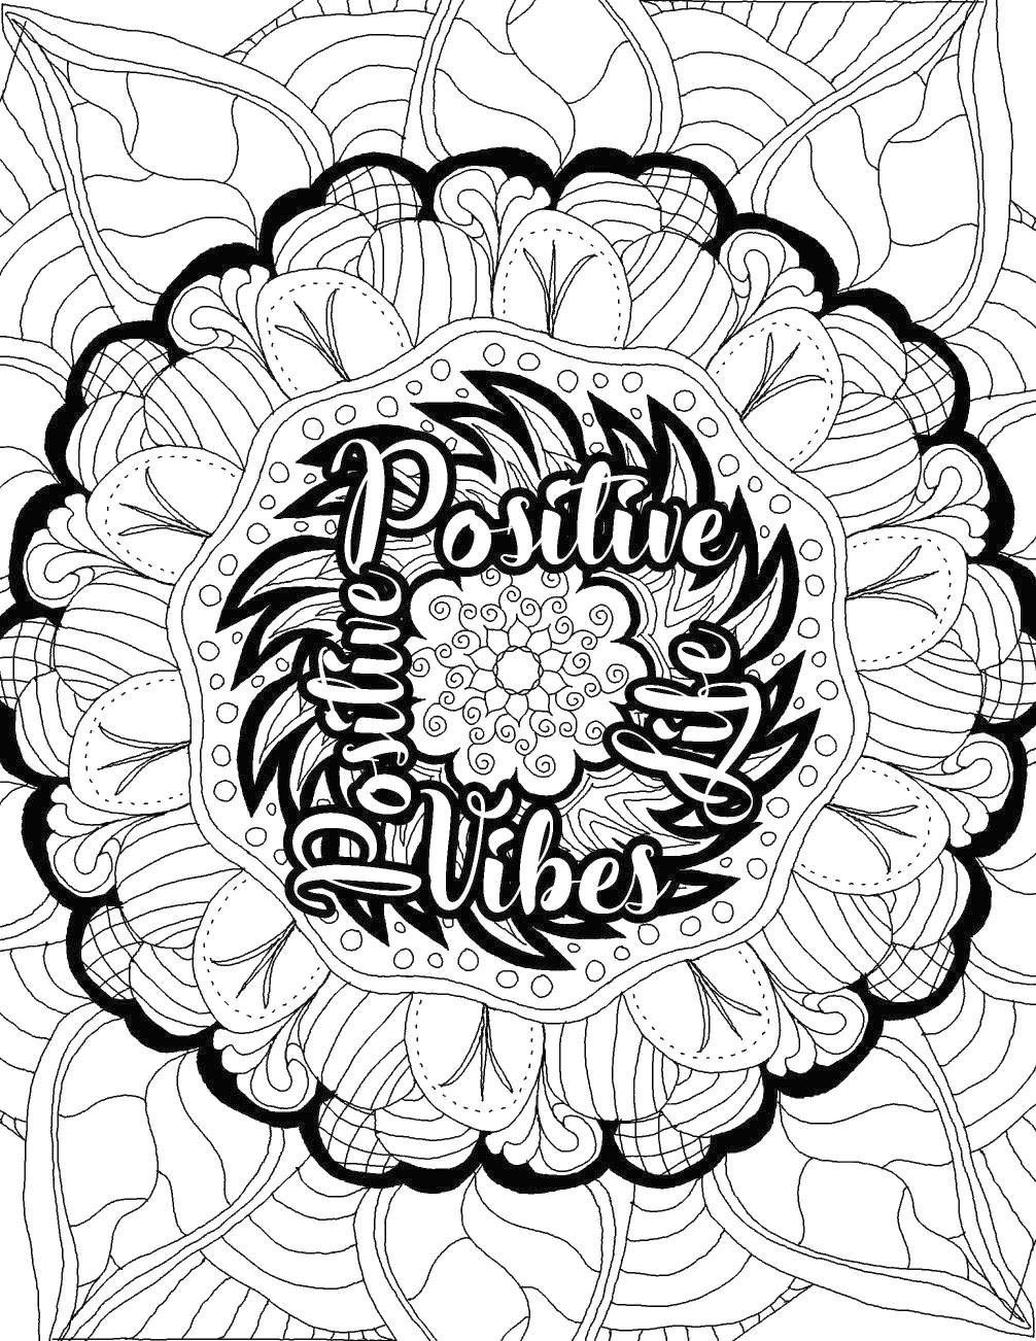 Printable Adult Coloring Pages Quotes Positive Life